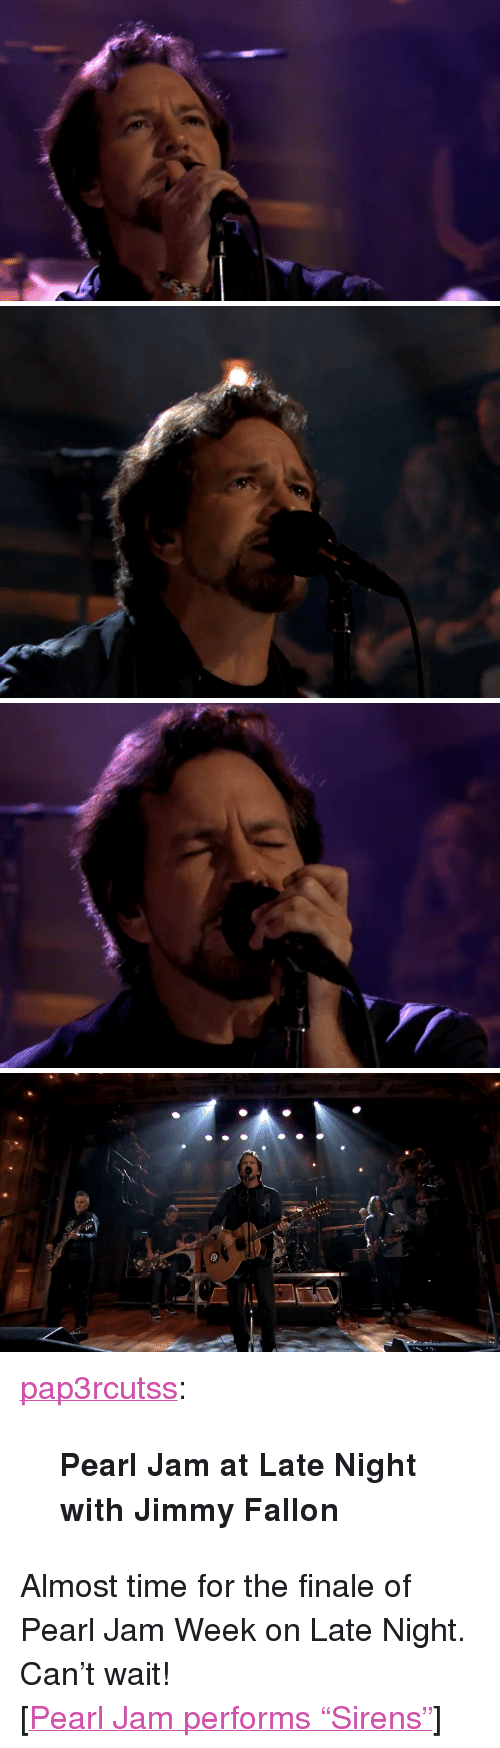 "pearl jam: <p><a class=""tumblr_blog"" href=""http://pap3rcutss.tumblr.com/post/65026293040/pearl-jam-at-late-night-with-jimmy-fallon"" target=""_blank"">pap3rcutss</a>:</p> <blockquote> <p><strong>Pearl Jam at Late Night with Jimmy Fallon</strong></p> </blockquote> <p>Almost time for the finale of Pearl Jam Week on Late Night. Can&rsquo;t wait!</p> <p>[<a href=""http://www.latenightwithjimmyfallon.com/blogs/2013/10/pearl-jam-sirens/"" target=""_blank"">Pearl Jam performs &ldquo;Sirens&rdquo;</a>]</p>"